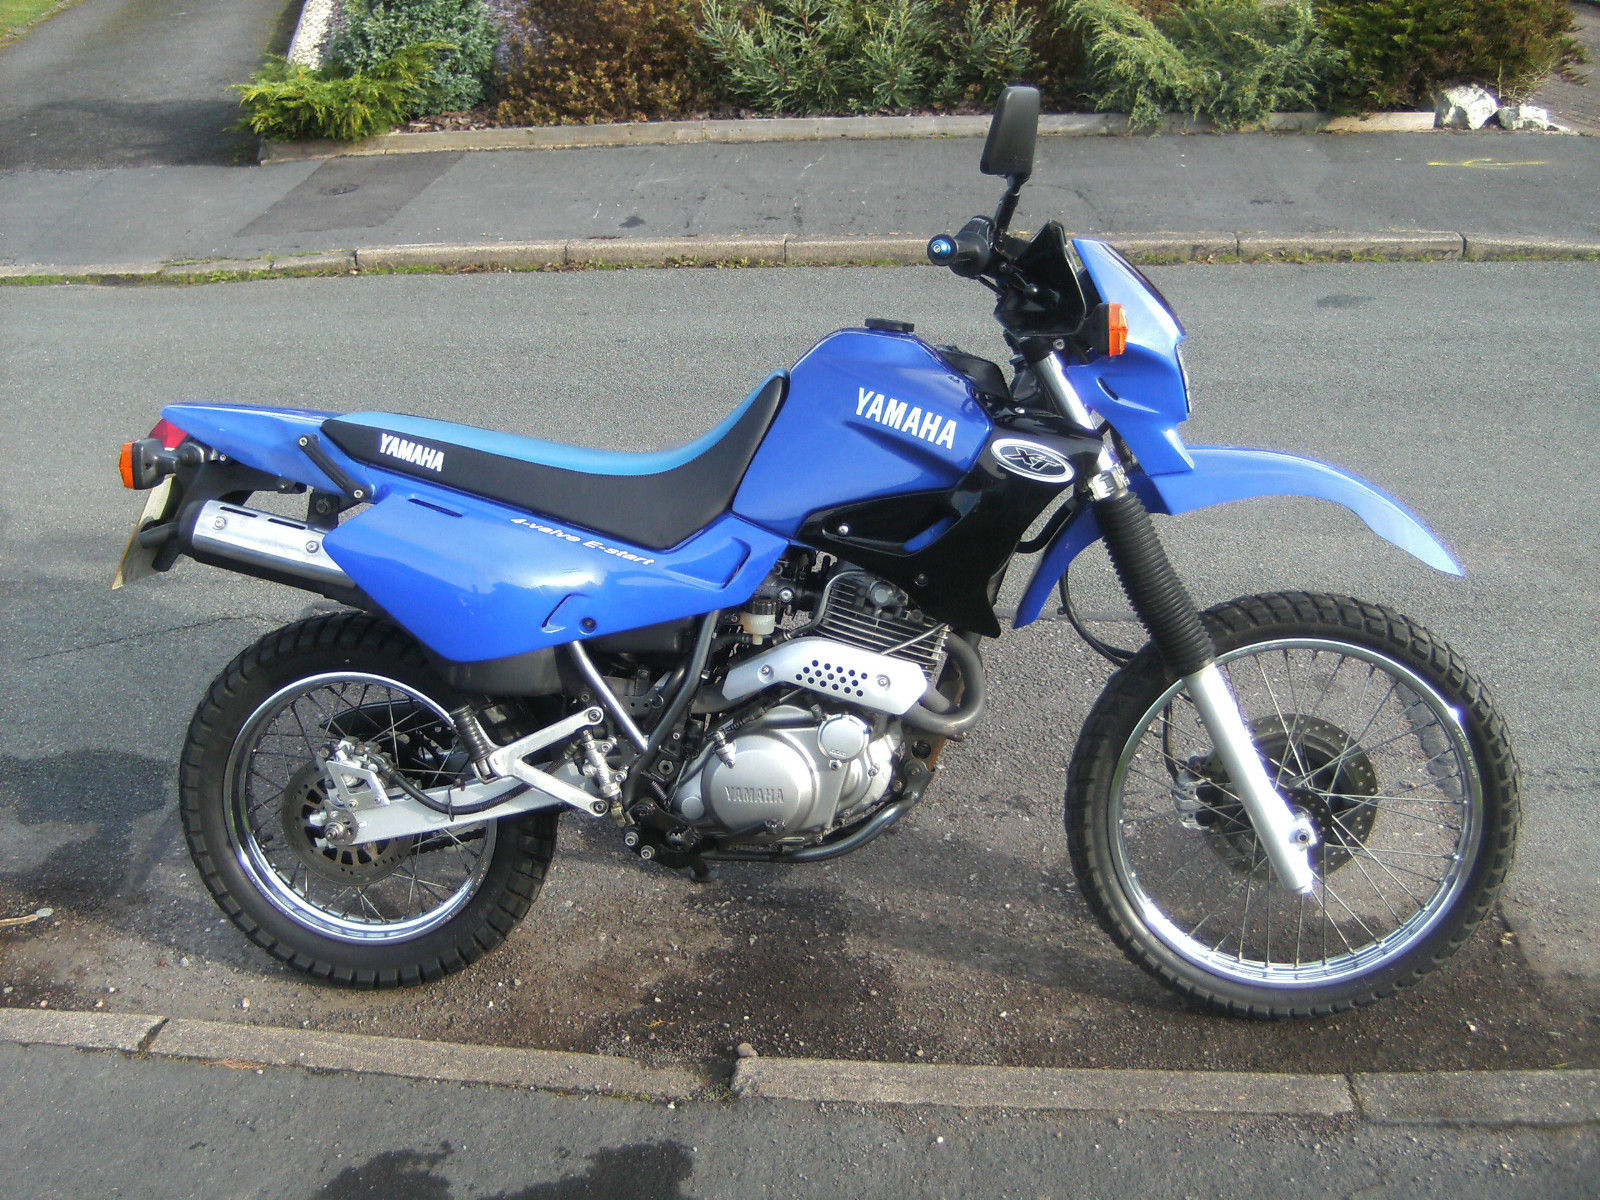 yamaha xt 600 mint condition 2002 priced to sell. Black Bedroom Furniture Sets. Home Design Ideas